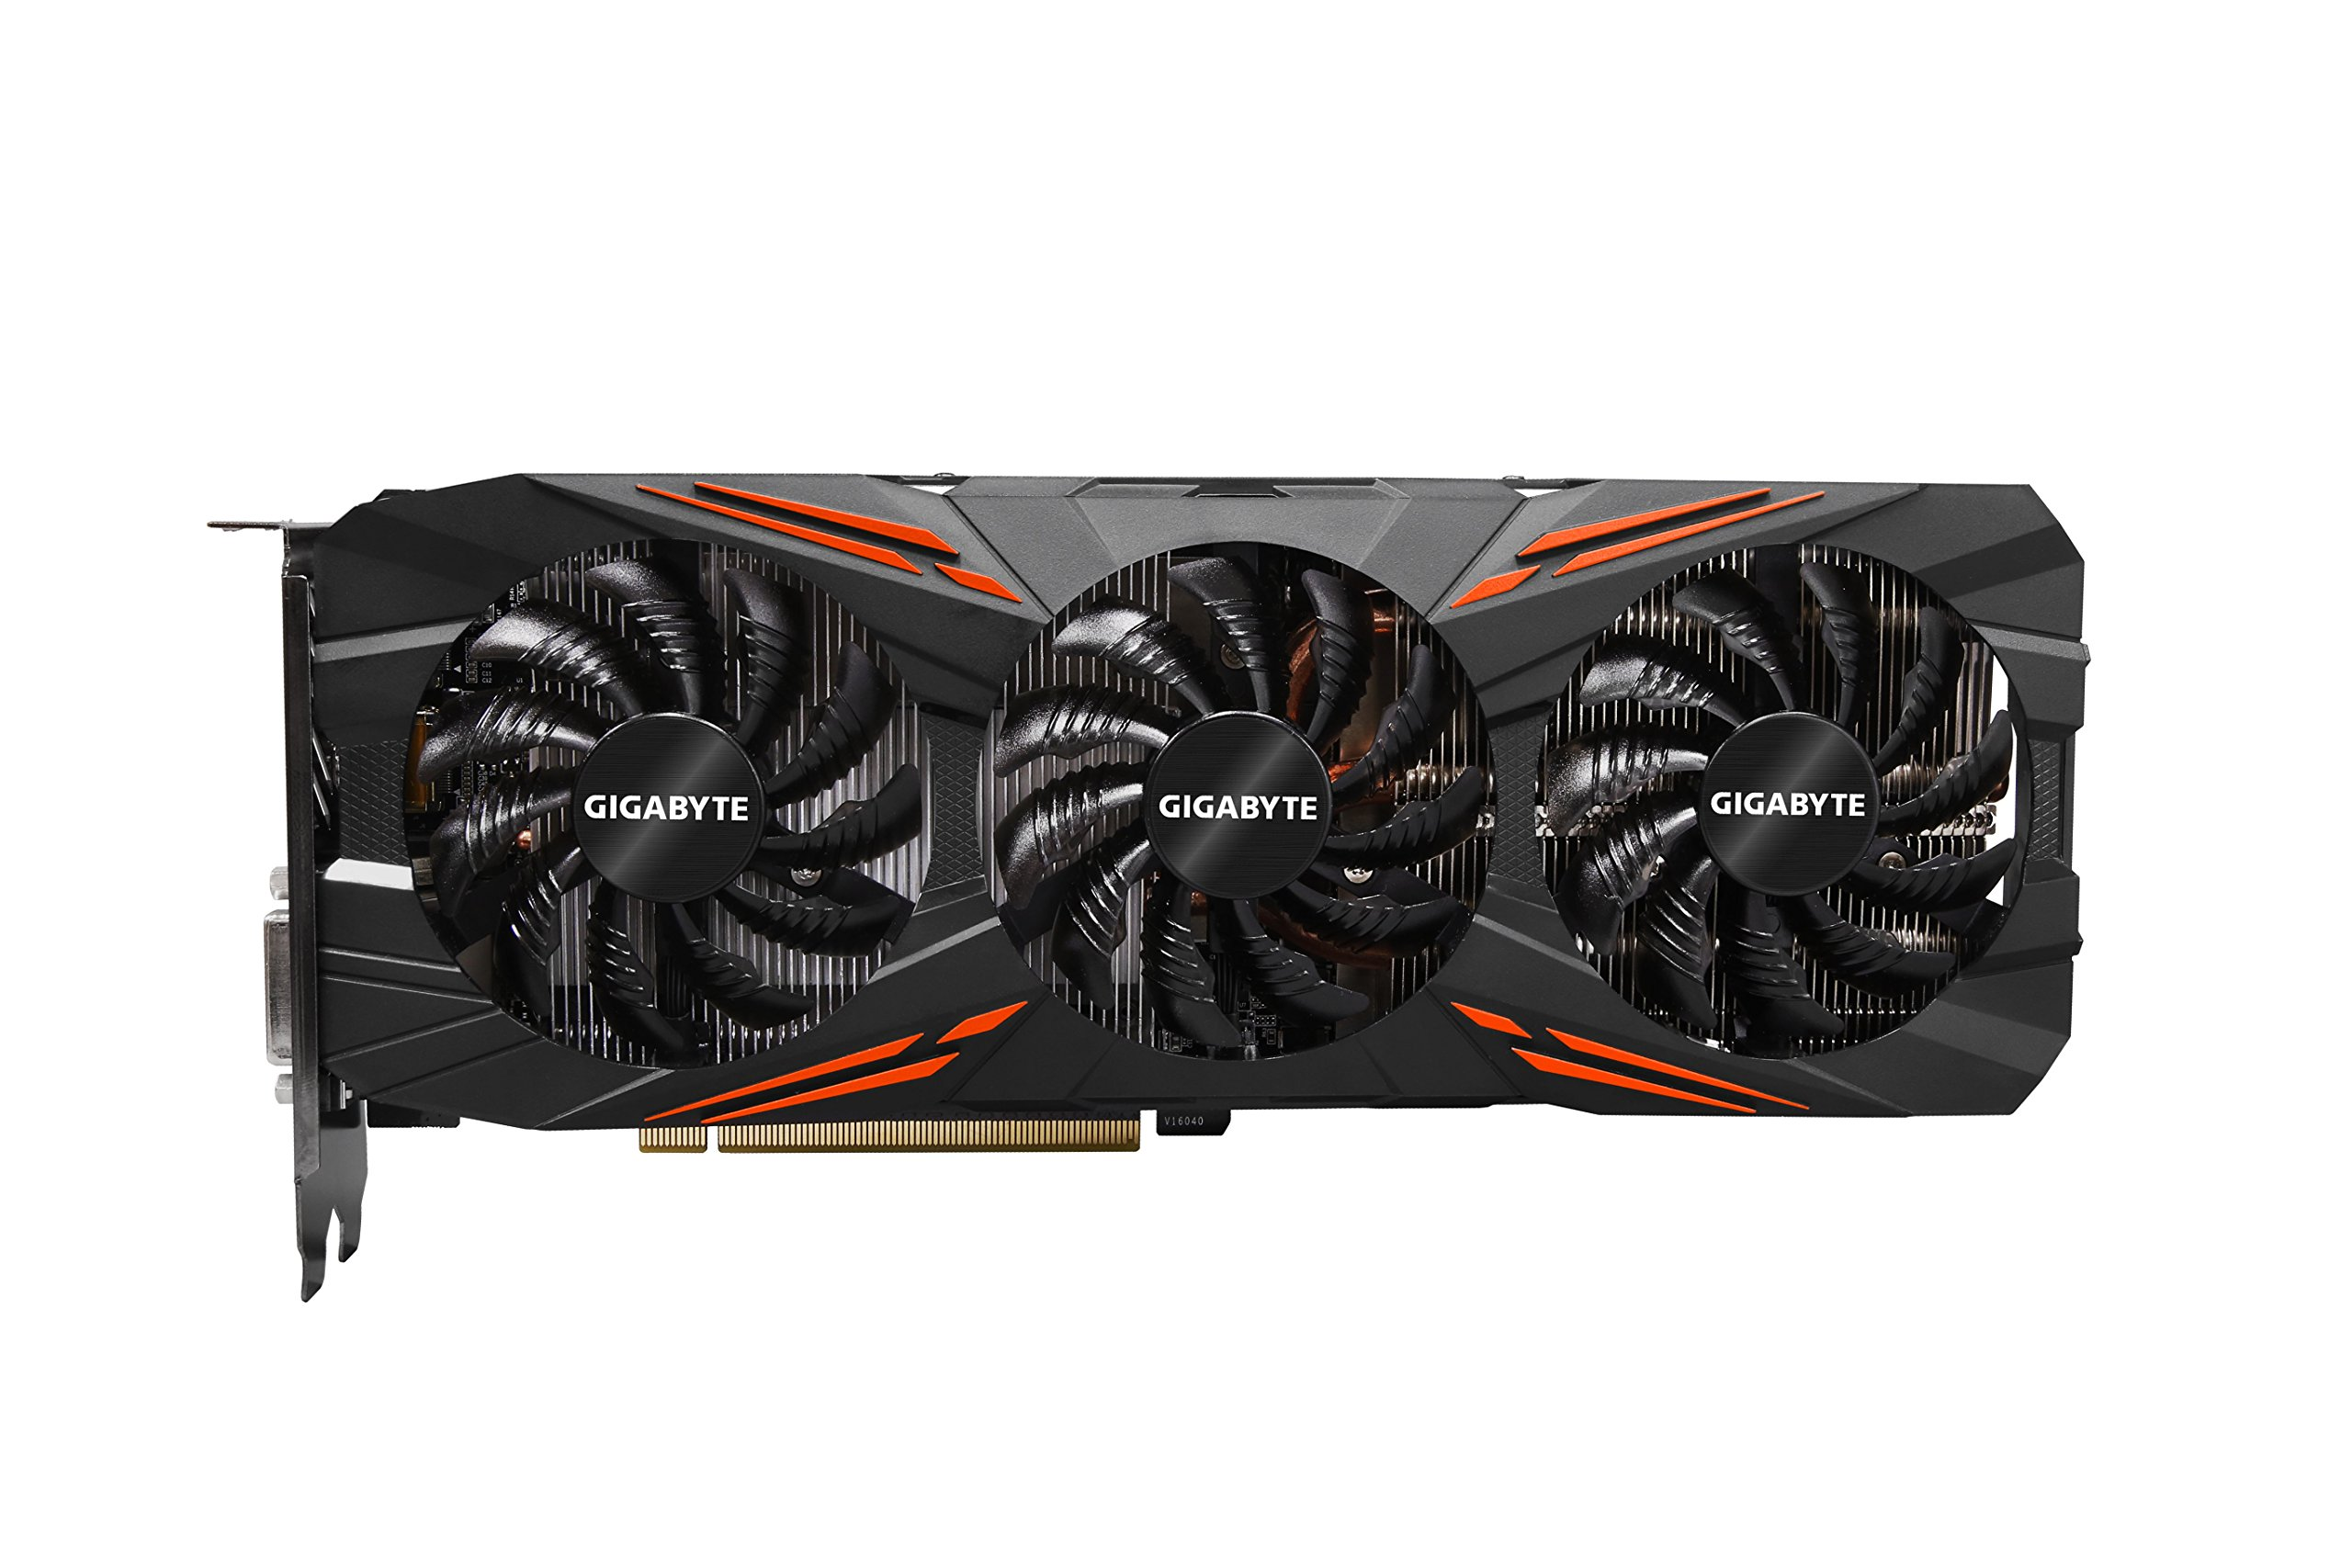 GIGABYTE GeForce GTX 1070 Ti GAMING 8G Graphics card by Gigabyte (Image #1)